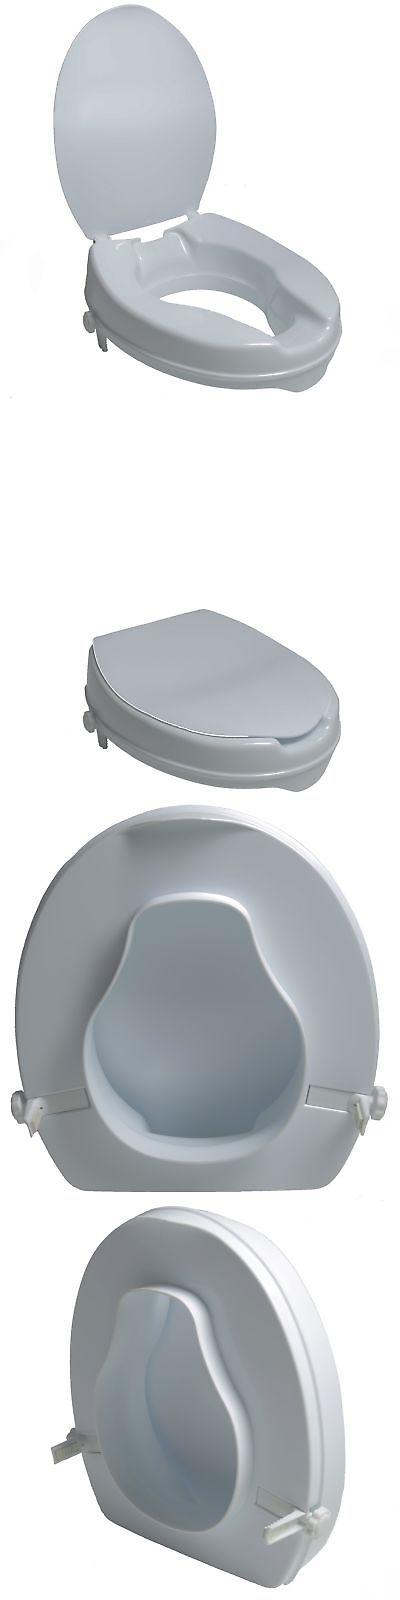 2 inch toilet seat. Toilet Seats  Pcp Molded Seat Riser With Lid White 2 Inch New